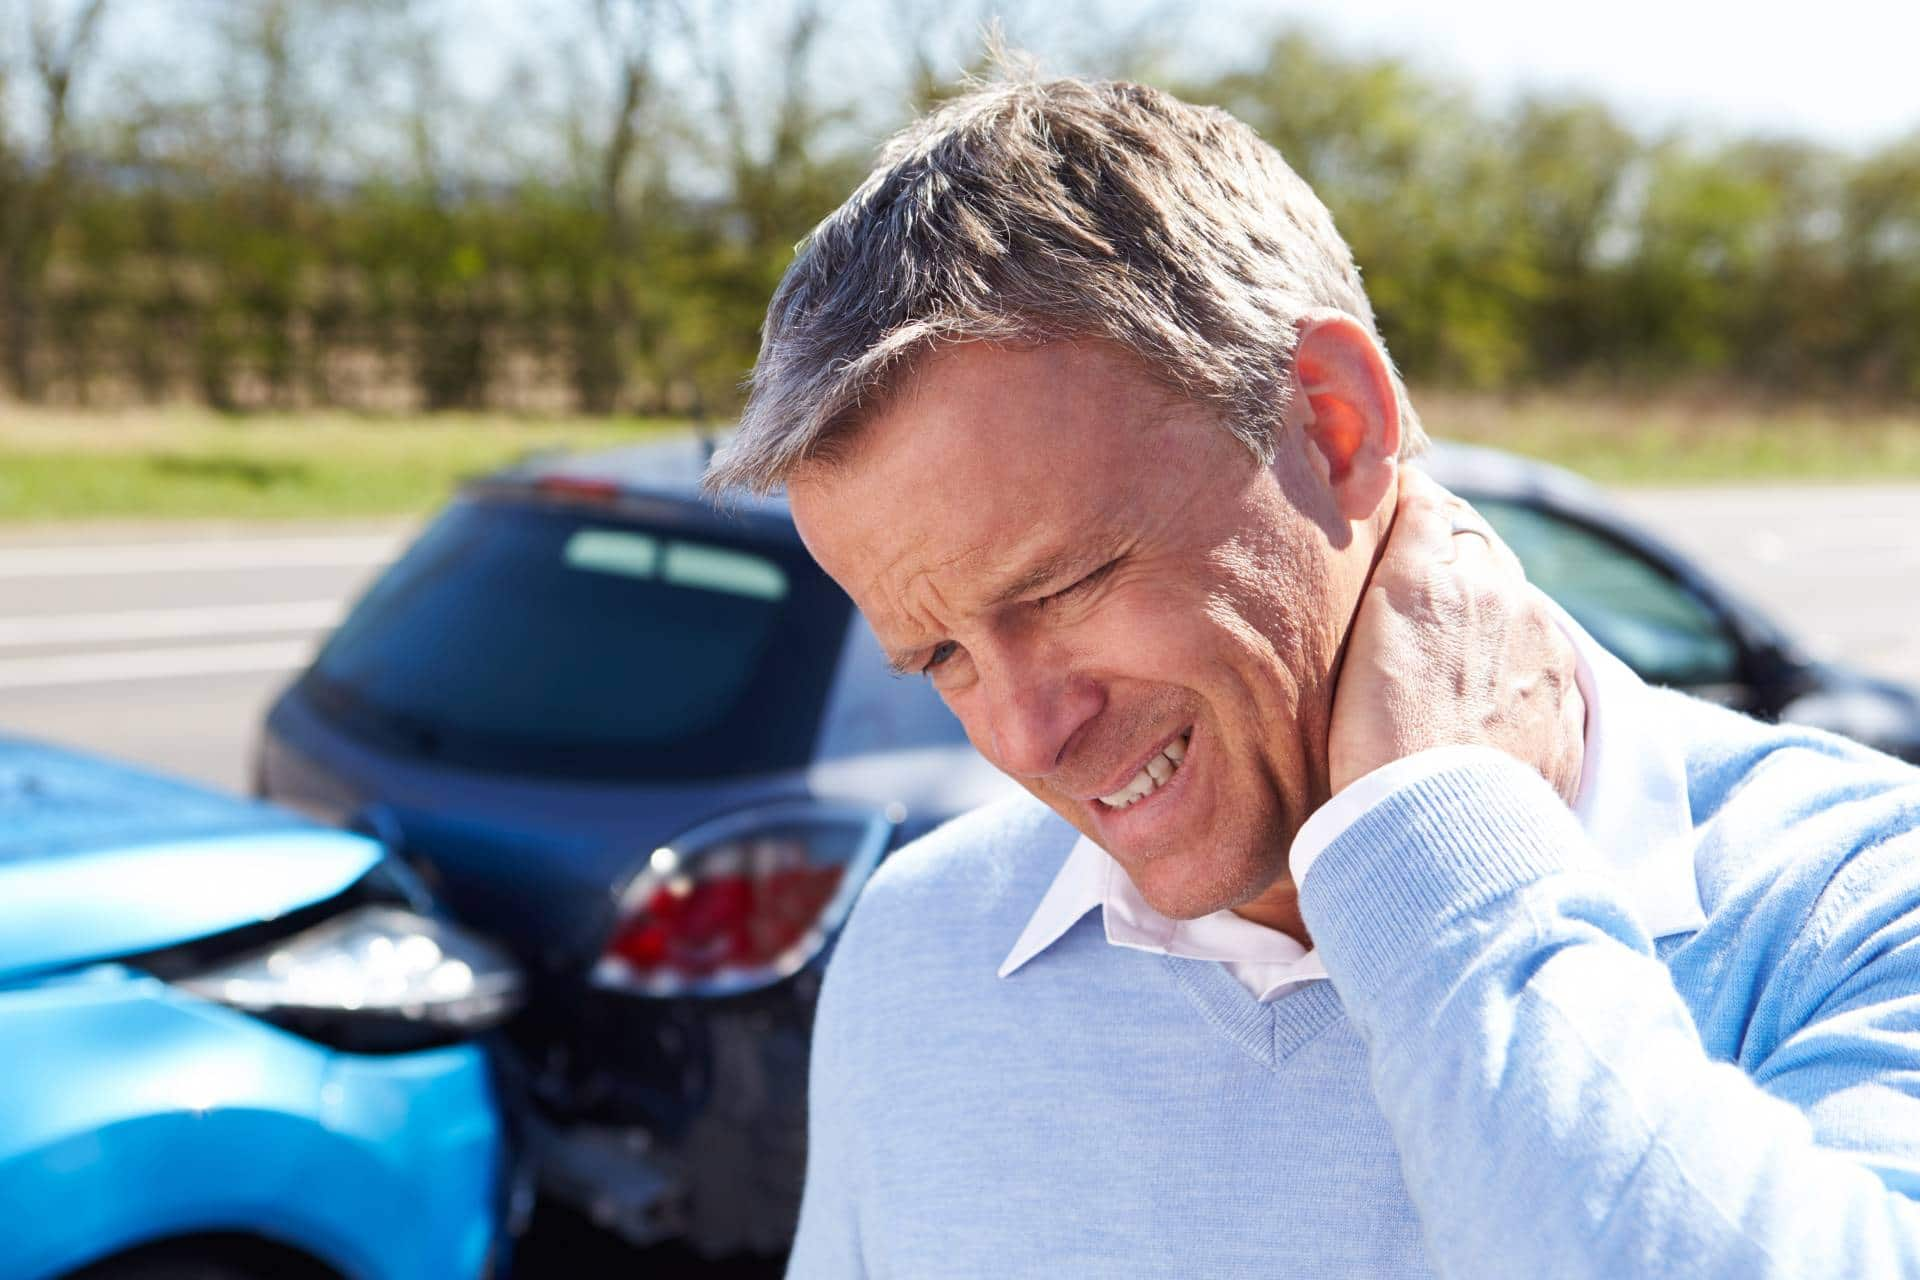 Hurt in a car accident? Schedule a free consultation with our personal injury lawyers at the angell law firm in Paces.